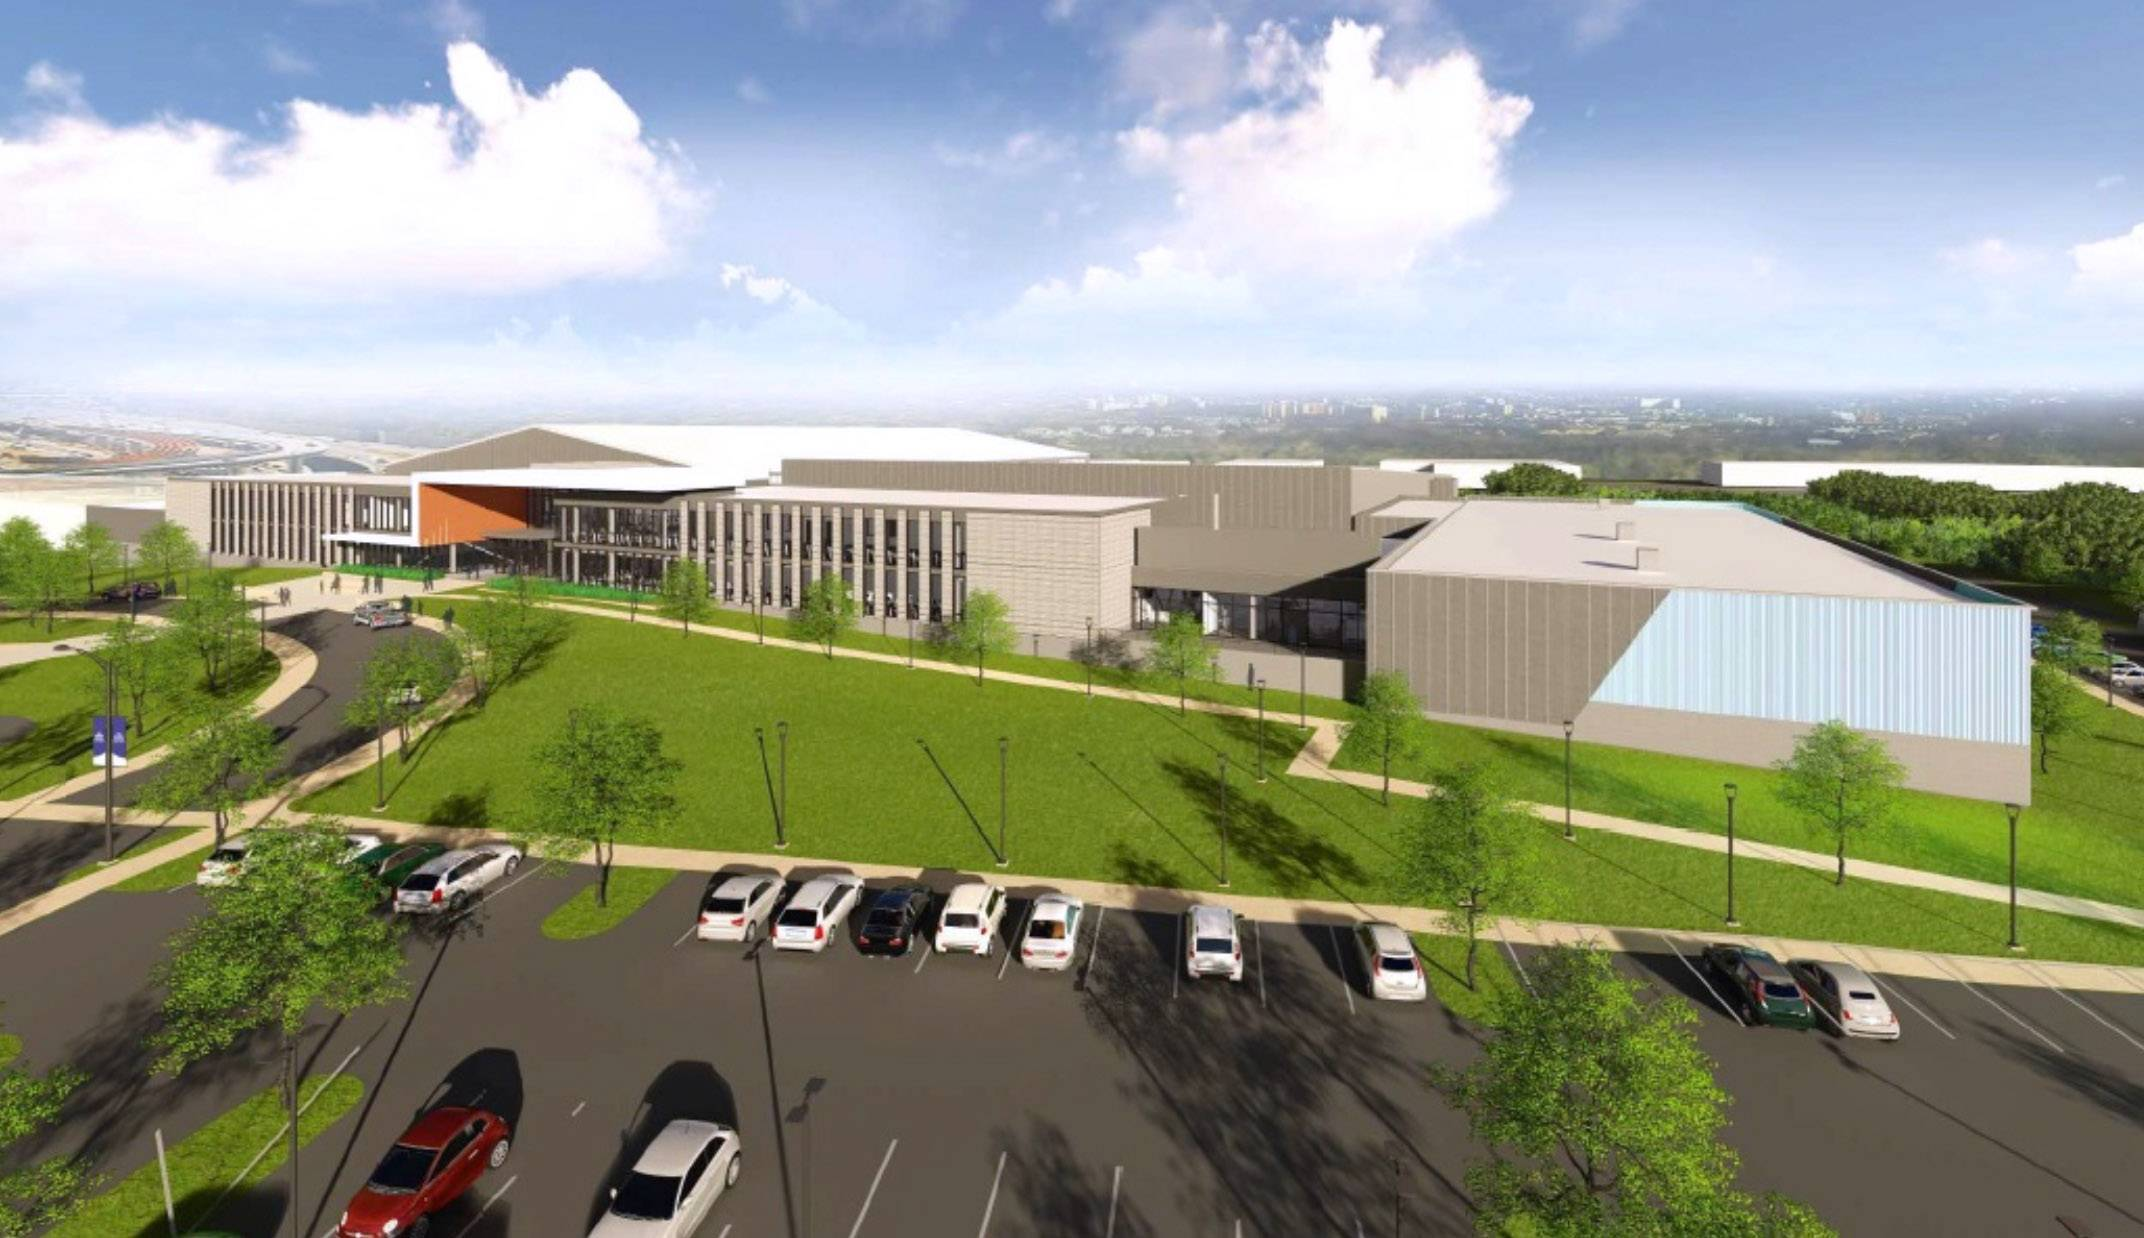 Proposal for Lincolnshire athletic center clears bureaucratic hurdles